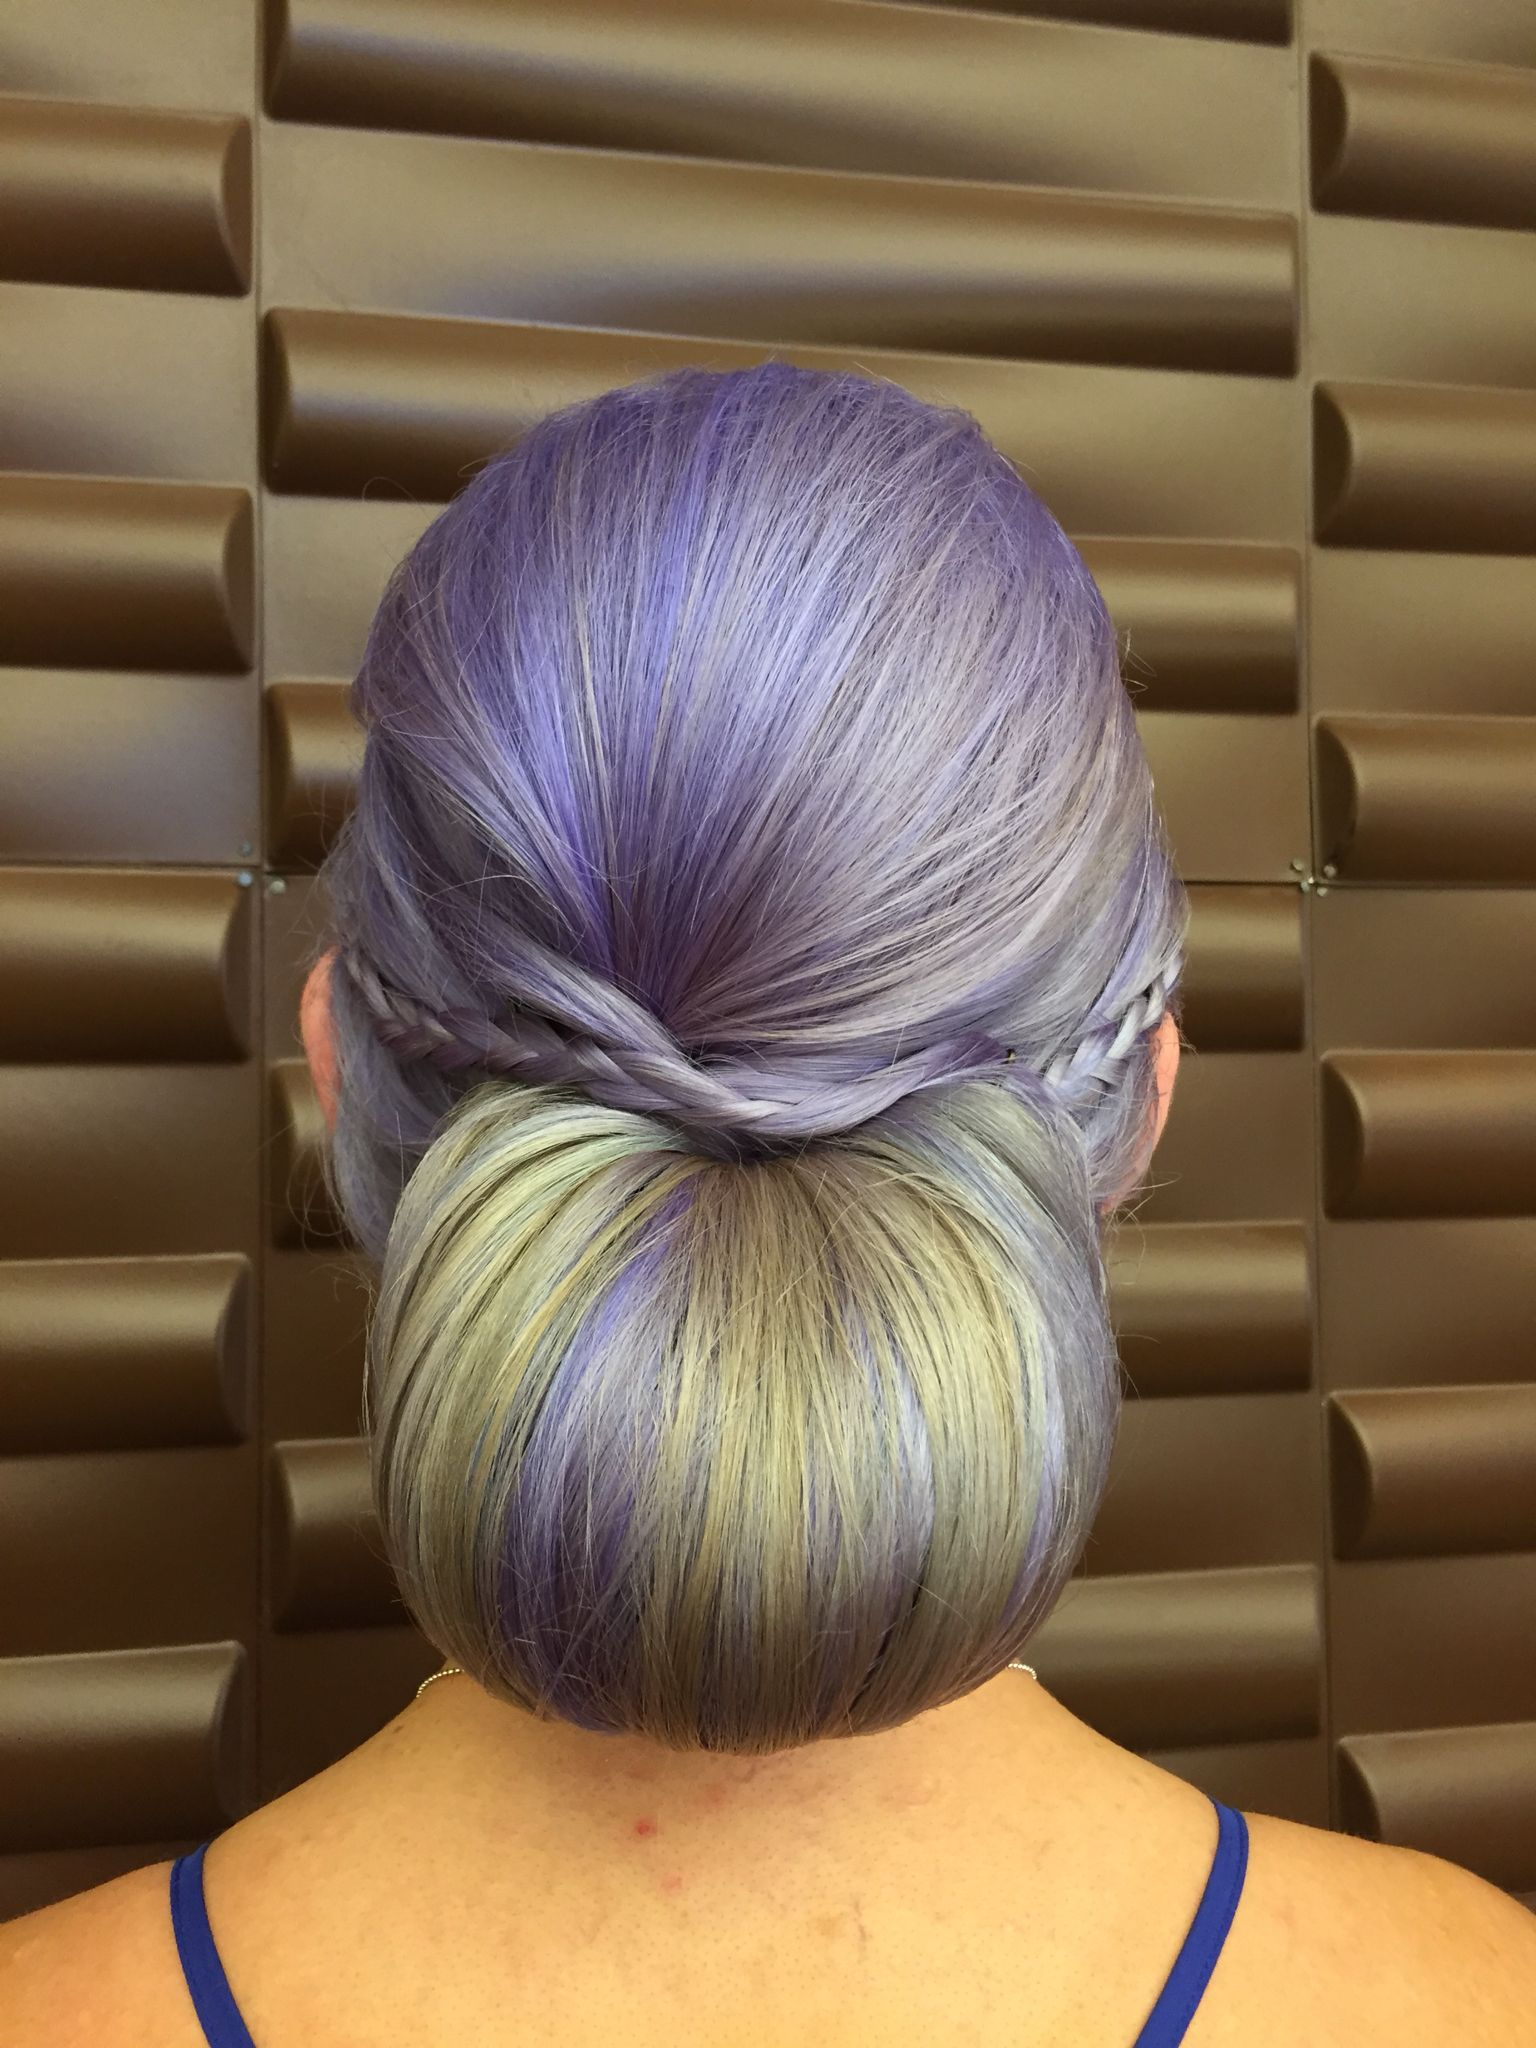 Beautiful lavender hair styled into a simple bridesmaid hair style with braids